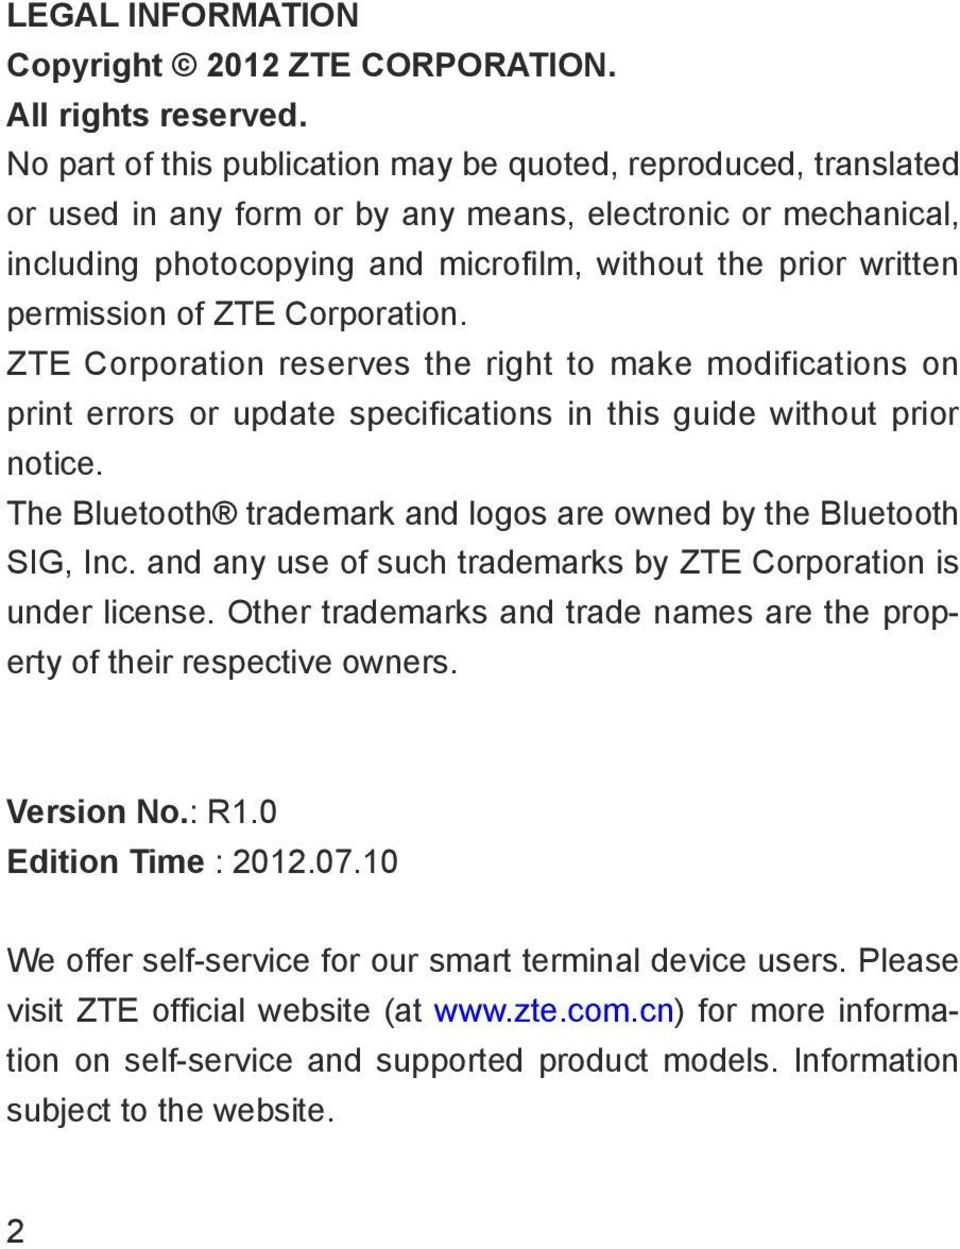 permission of ZTE Corporation. ZTE Corporation reserves the right to make modifications on print errors or update specifications in this guide without prior notice.